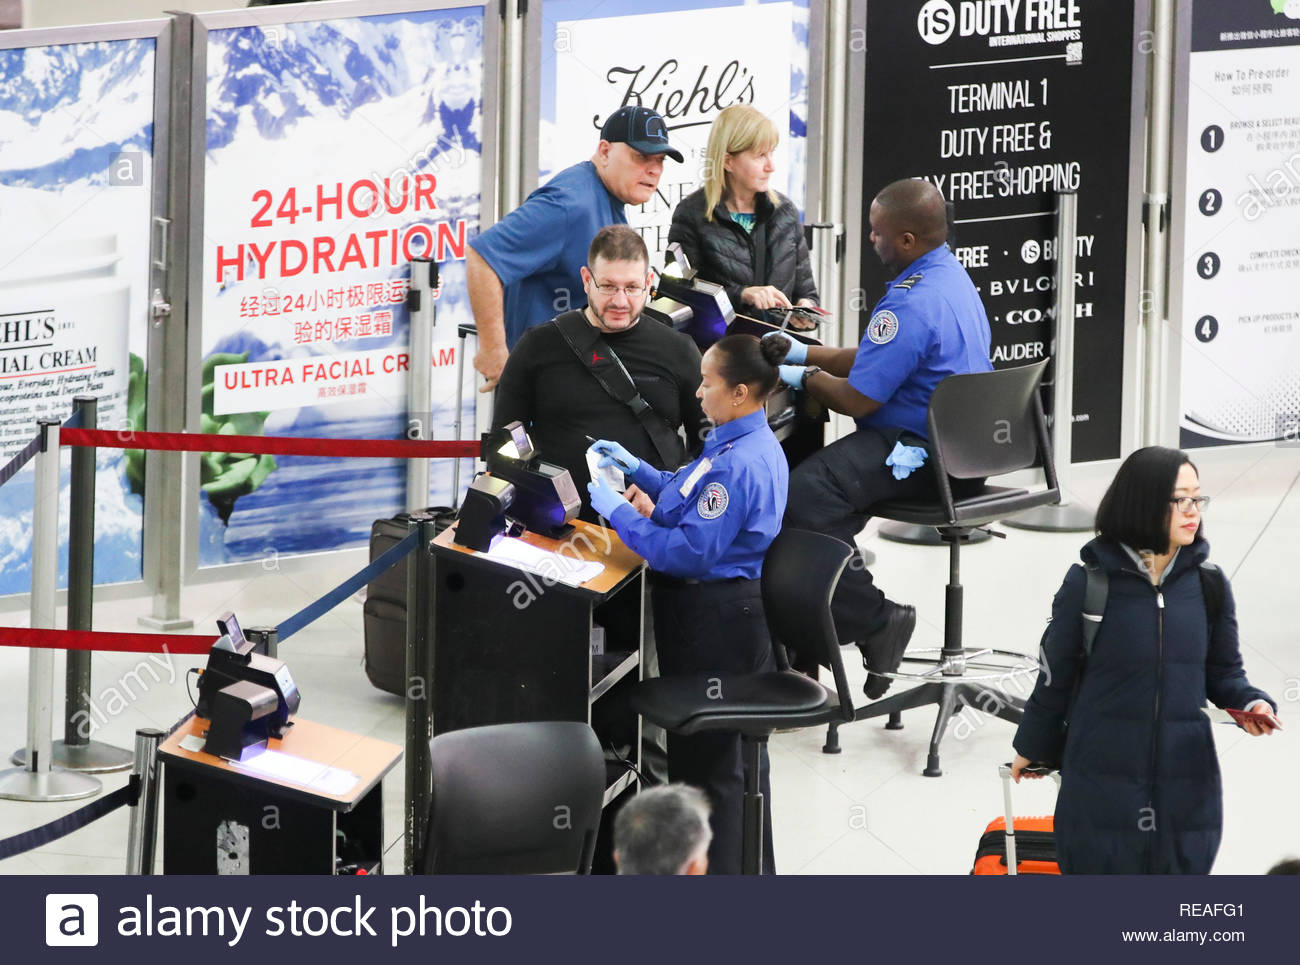 security transportation united states